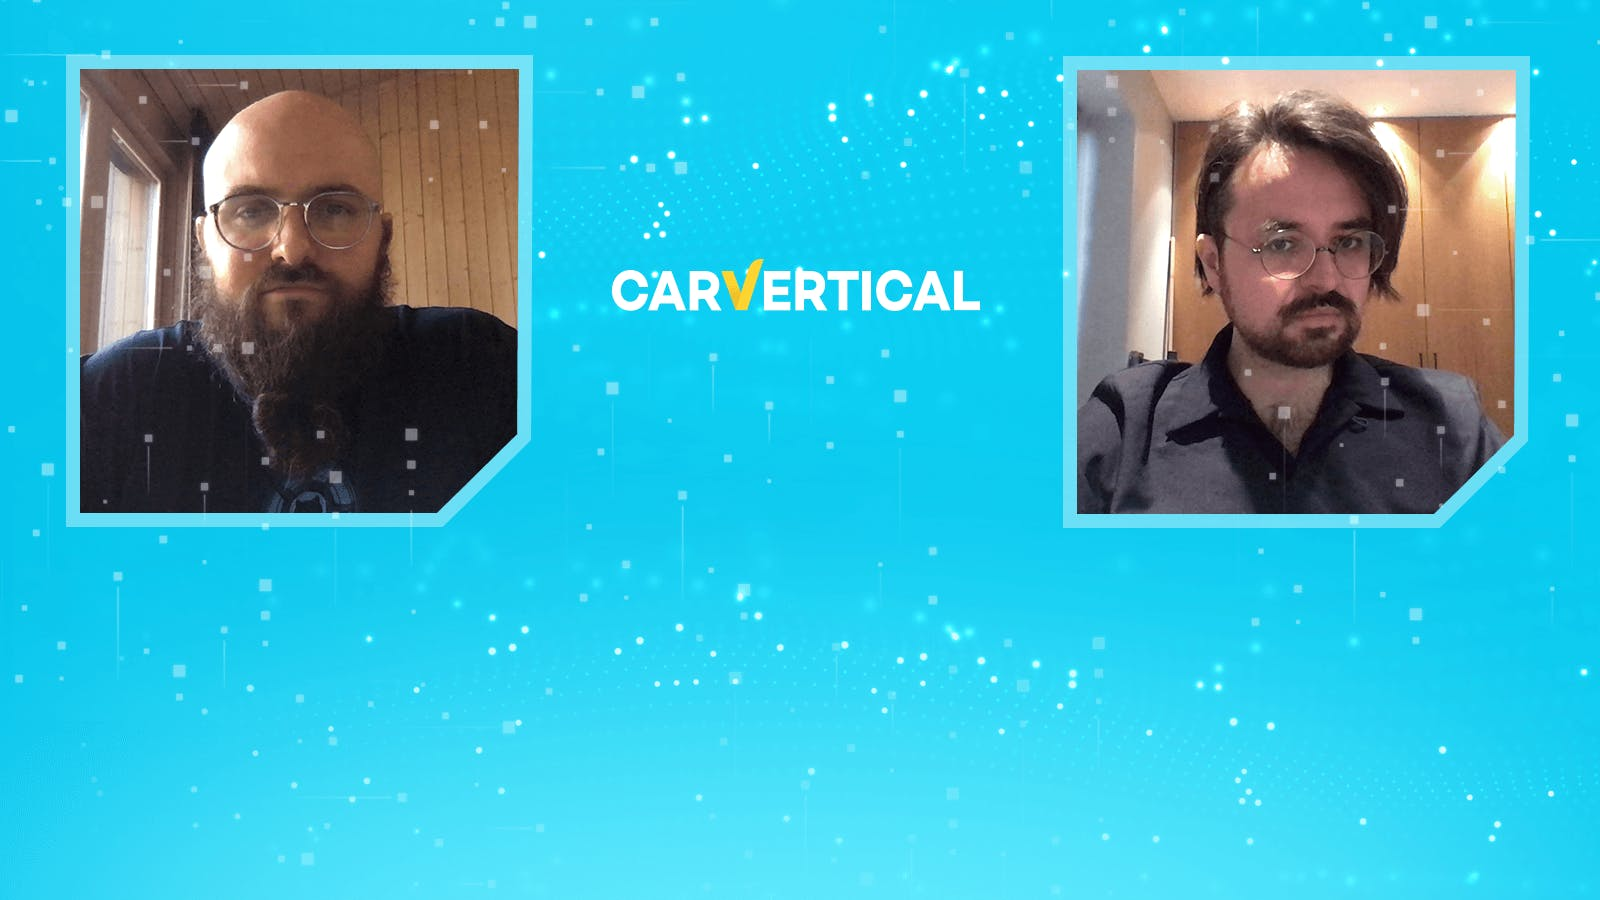 carVertical co-founders Rokas Medonis & Audrius Kučinskas: To our greatest token holders (early 2020 letter)